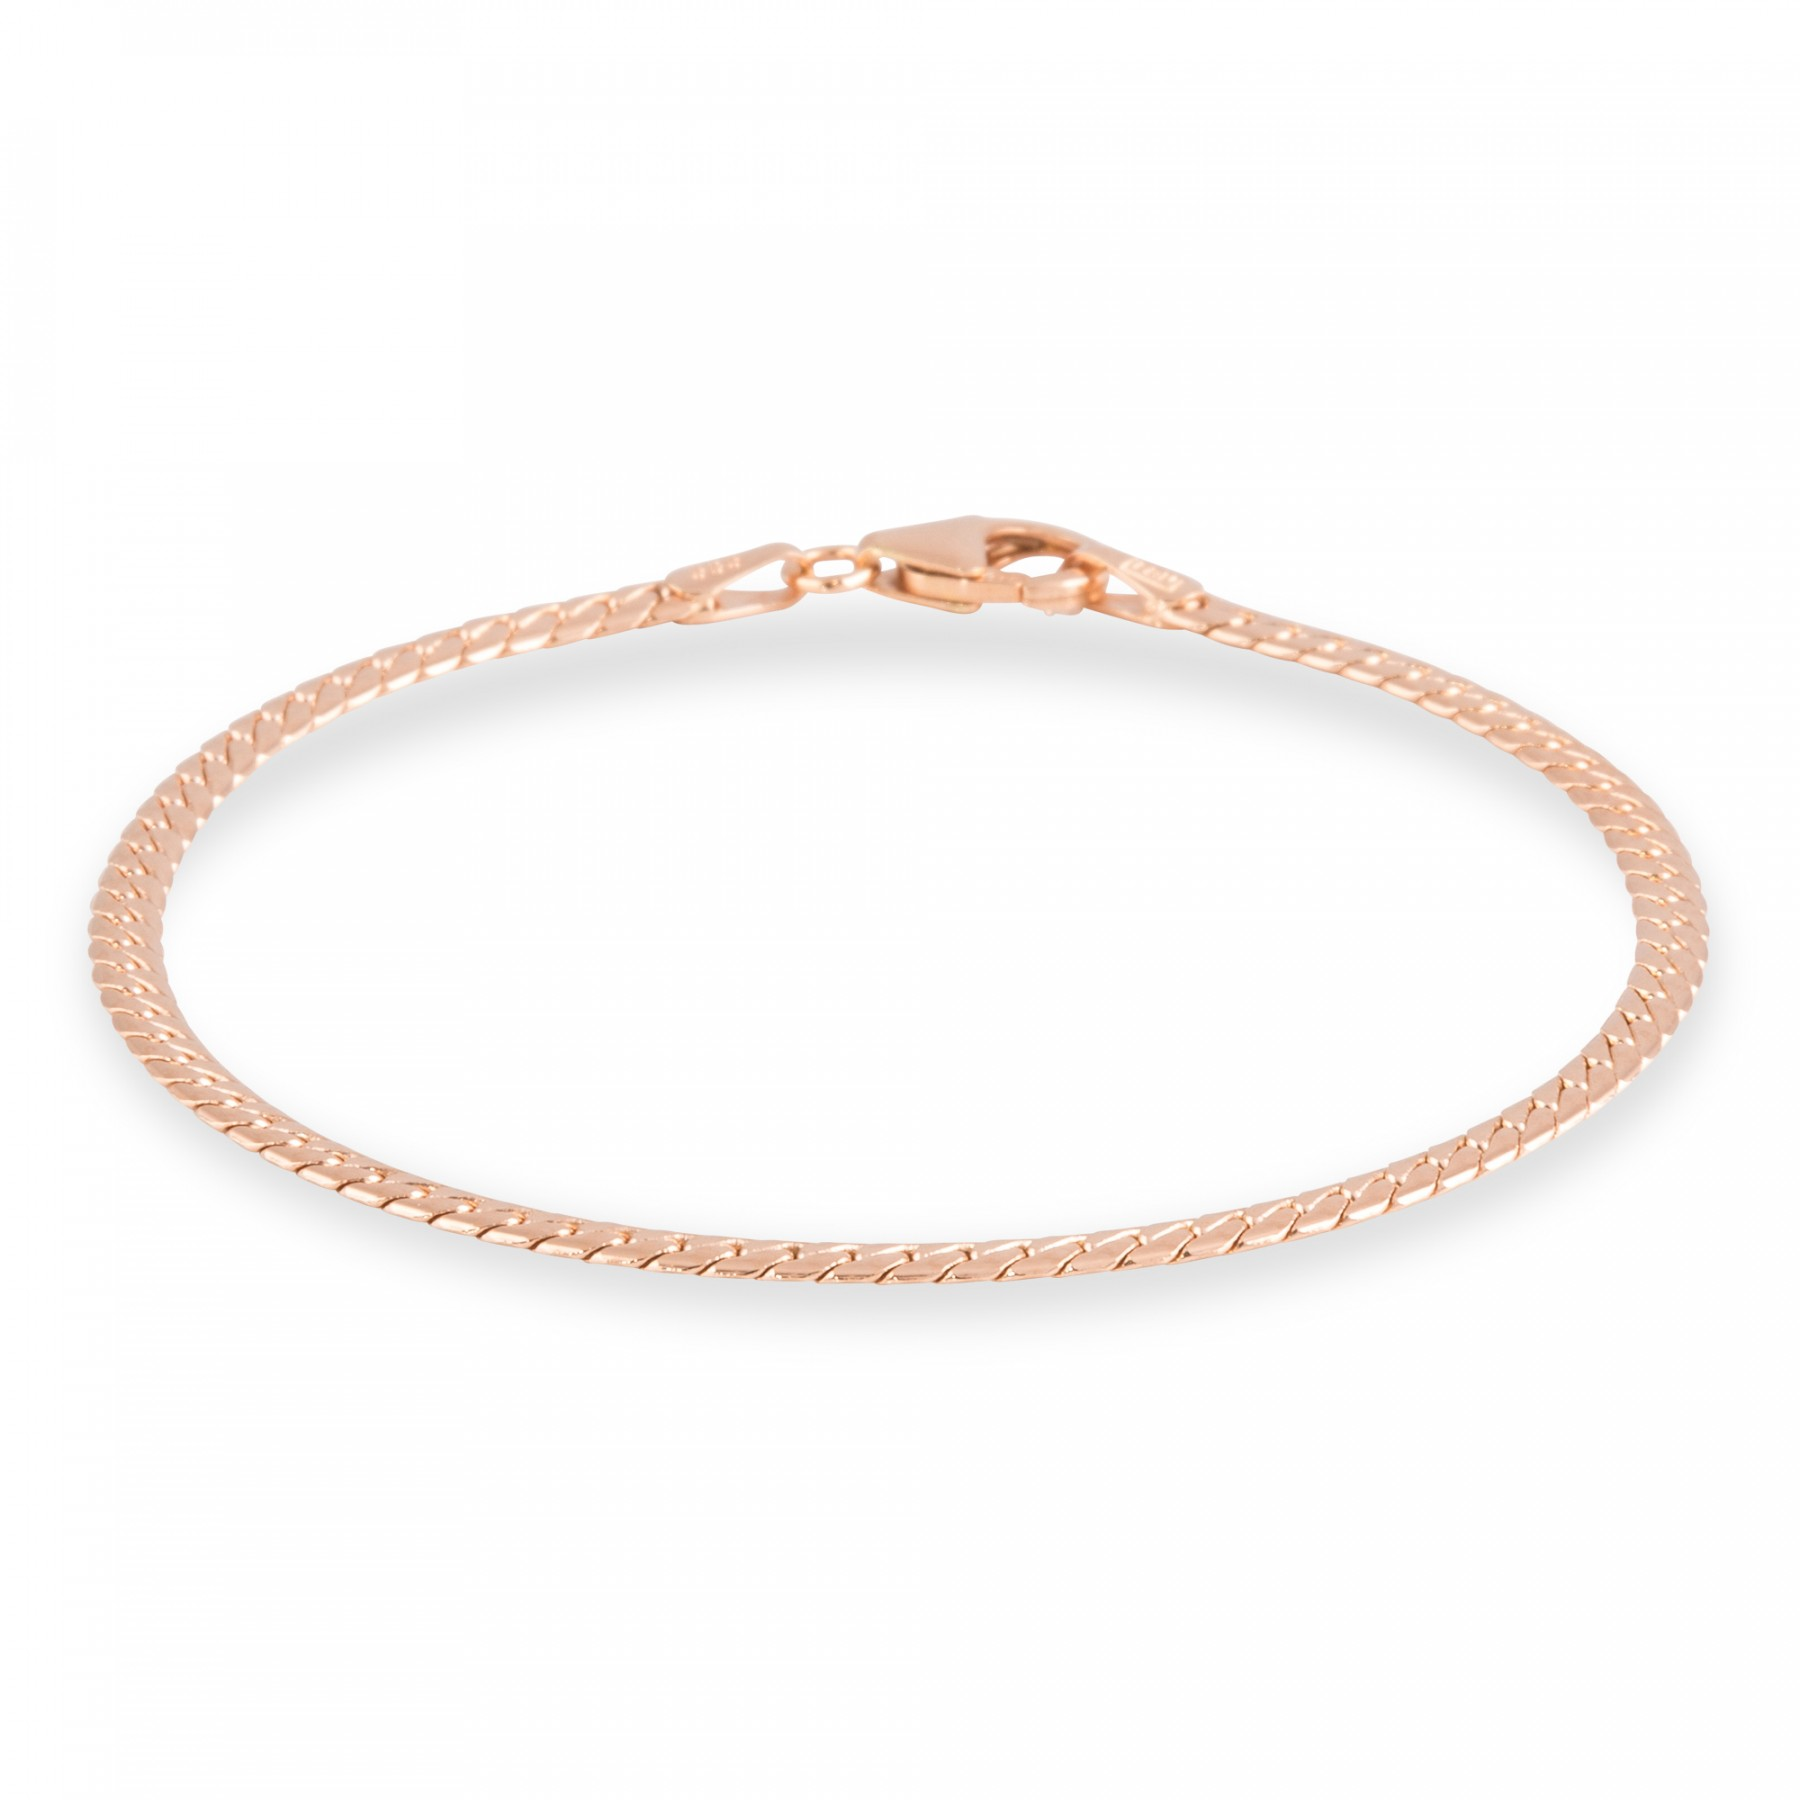 Roségouden schakelarmband gold collection 19 cm - herringbone - 2.9 mm breed 204.4002.19